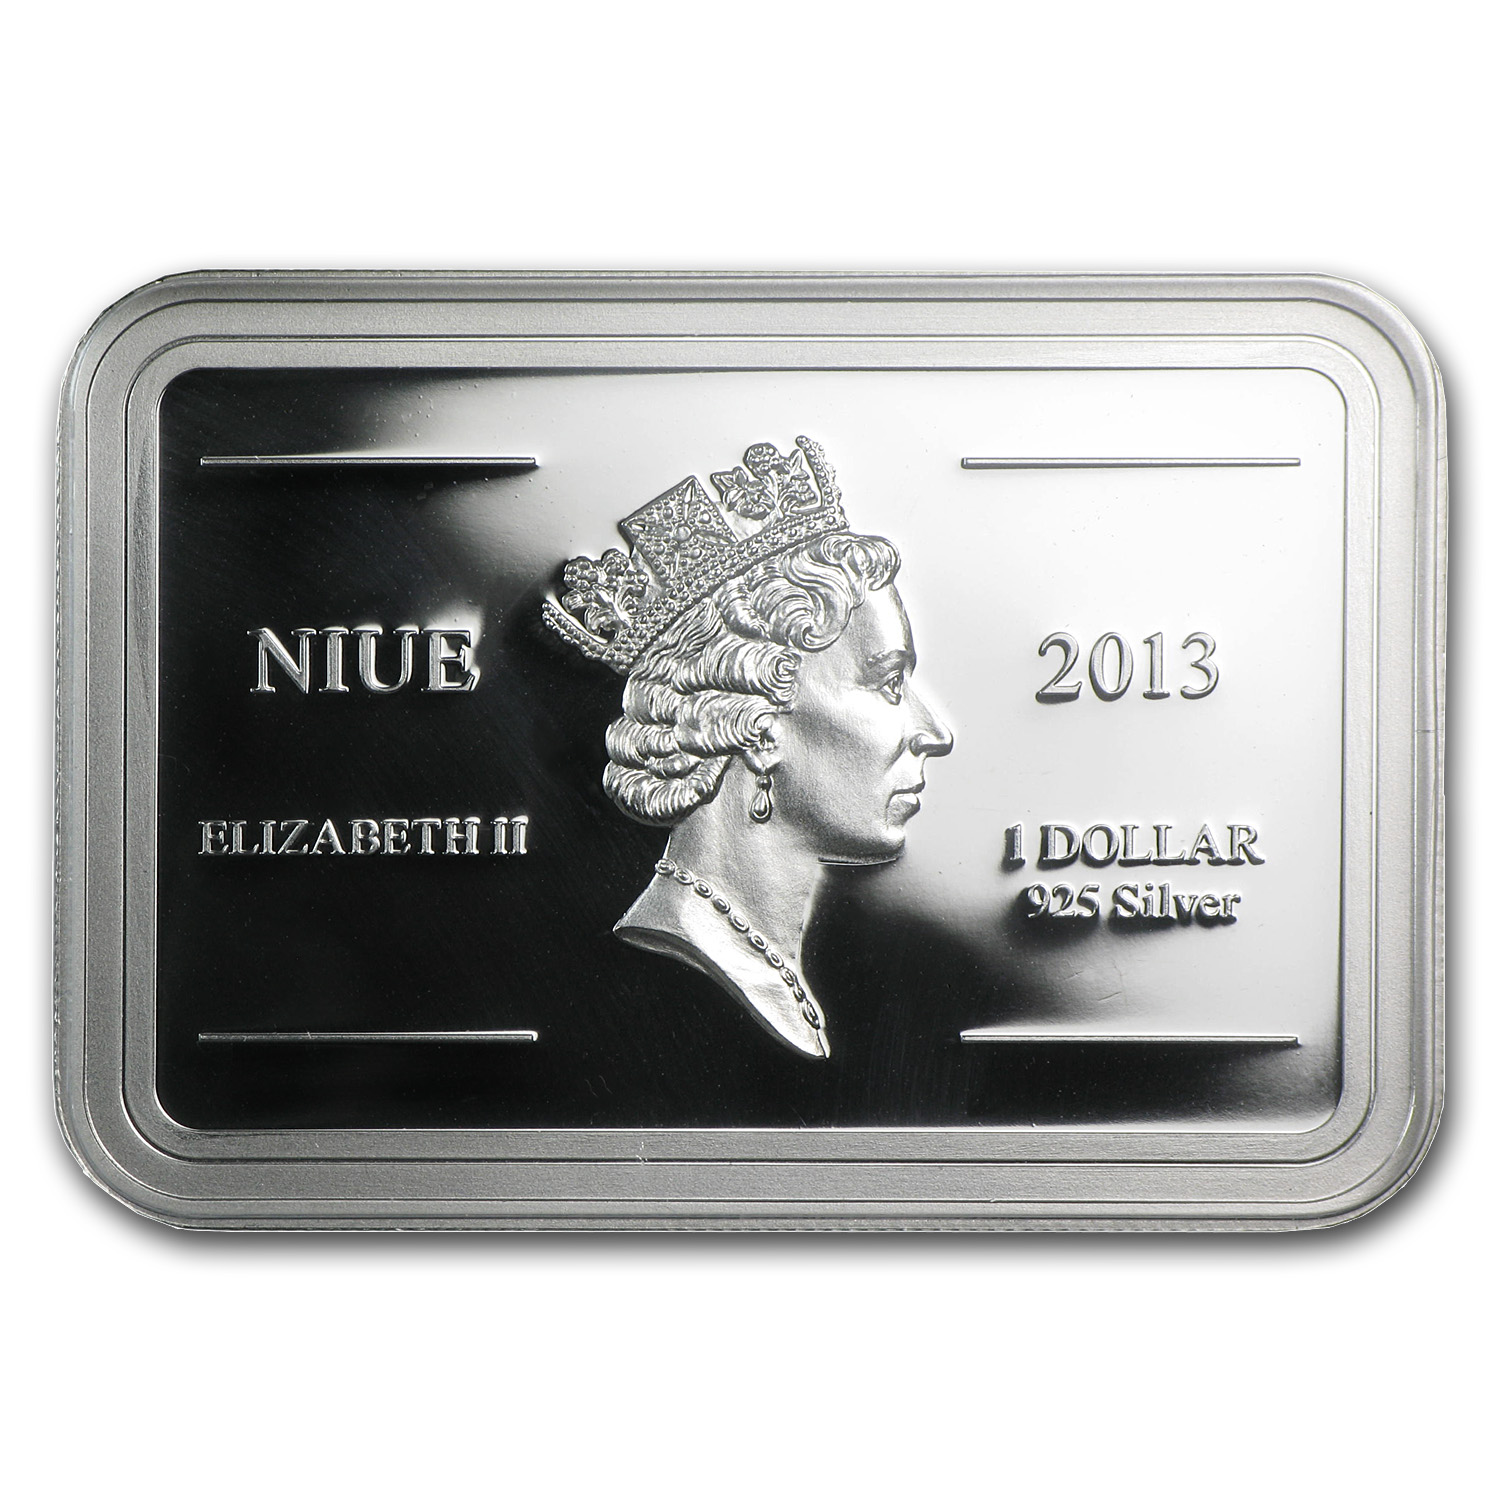 2013 1 oz Silver $1 Niue Royal Gramma Proof